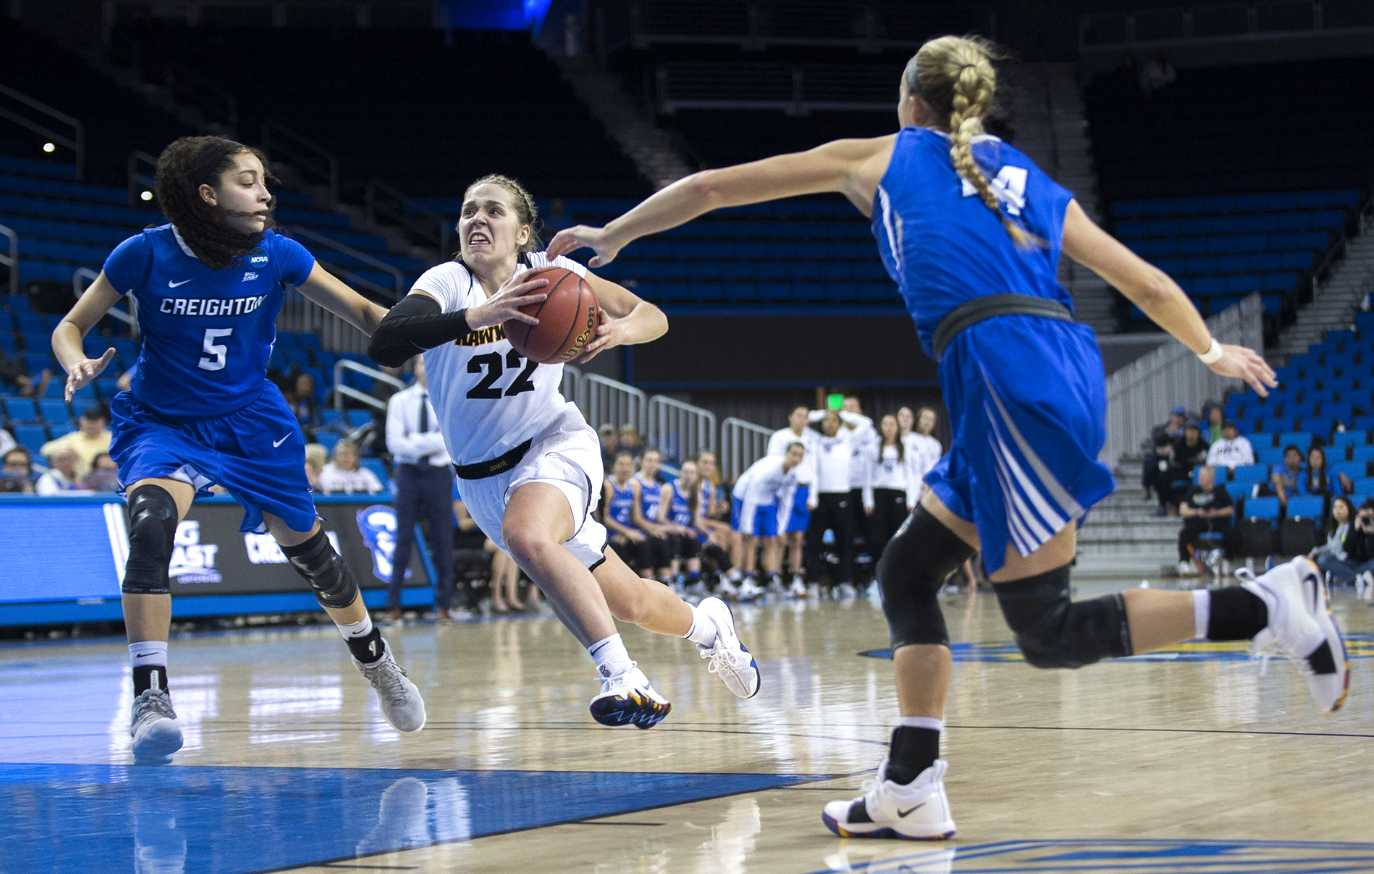 Iowa guard Kathleen Doyle drives to the hoop during the Iowa/Creighton NCAA tournament first round basketball game at Pauley Pavilion on UCLA's campus in Los Angeles on Saturday, March 17, 2018. The Bluejays defeated the Hawkeyes, 76-70. (Lily Smith/The Daily Iowan)